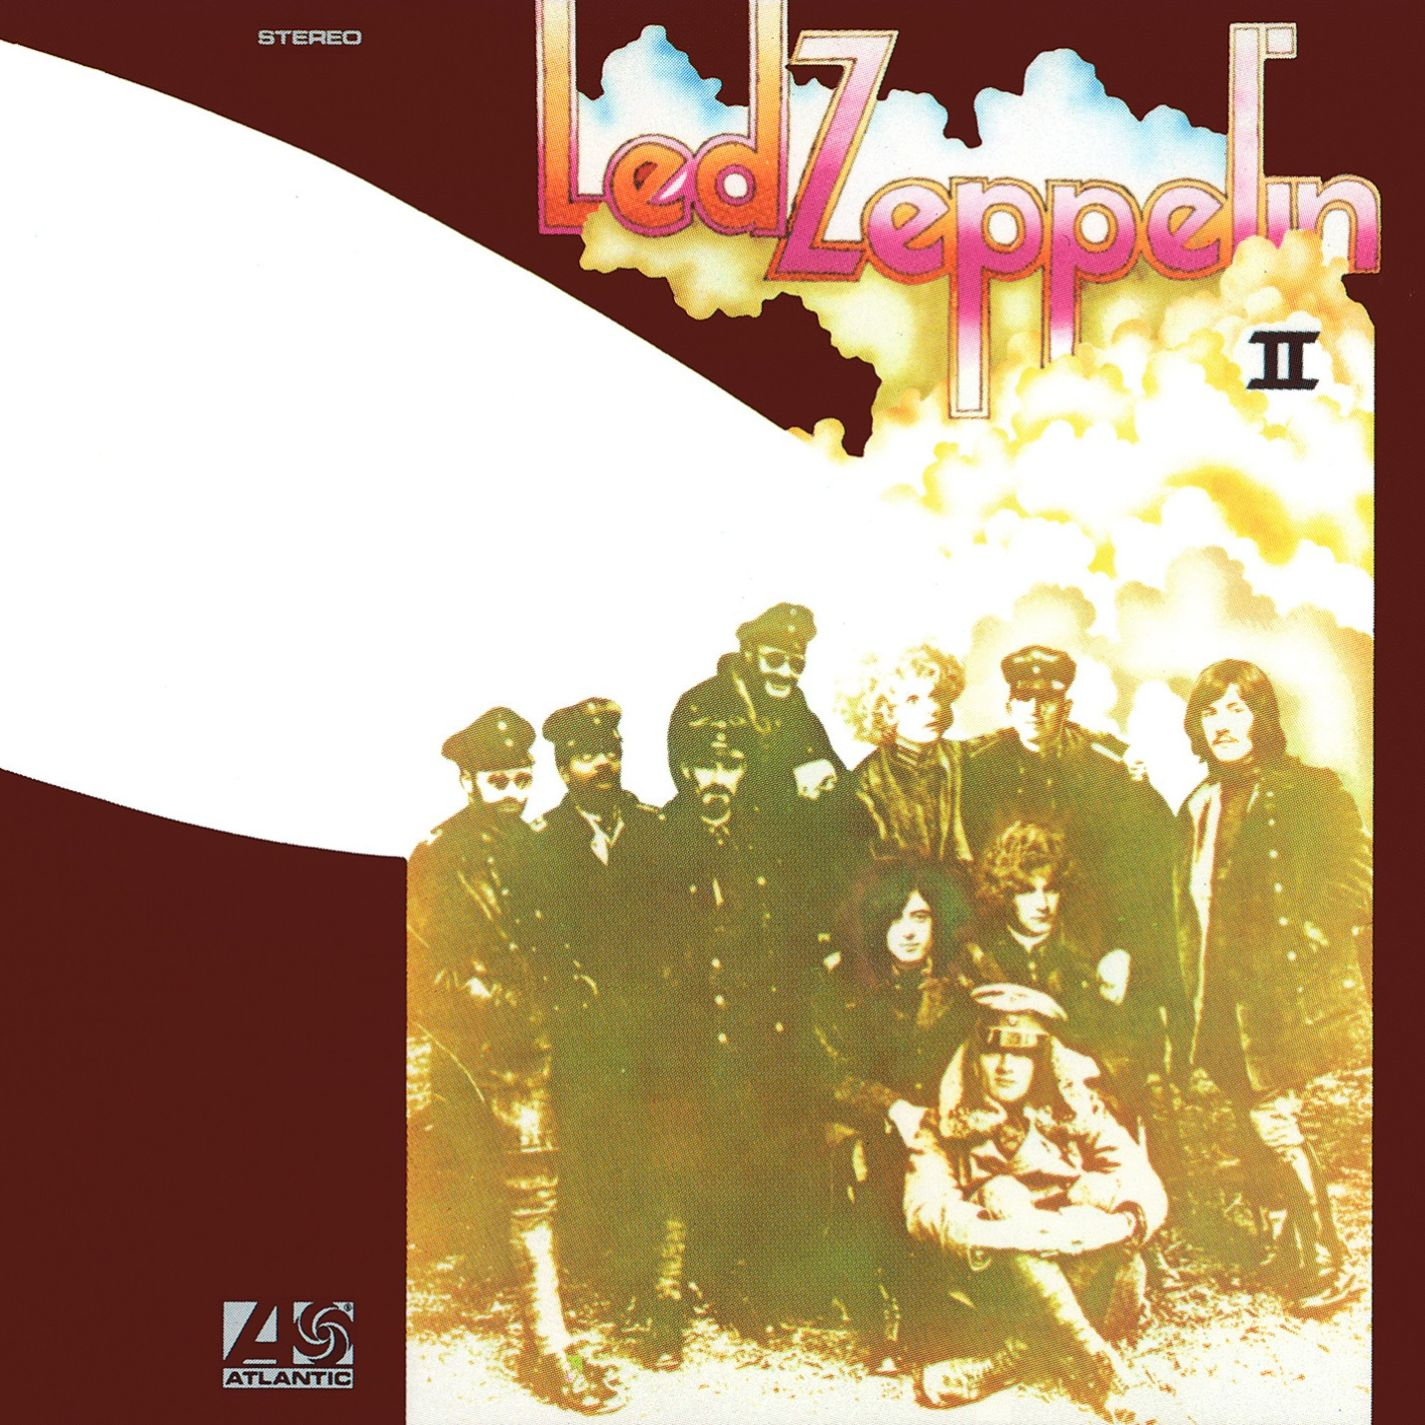 1969 - Led Zeppelin II